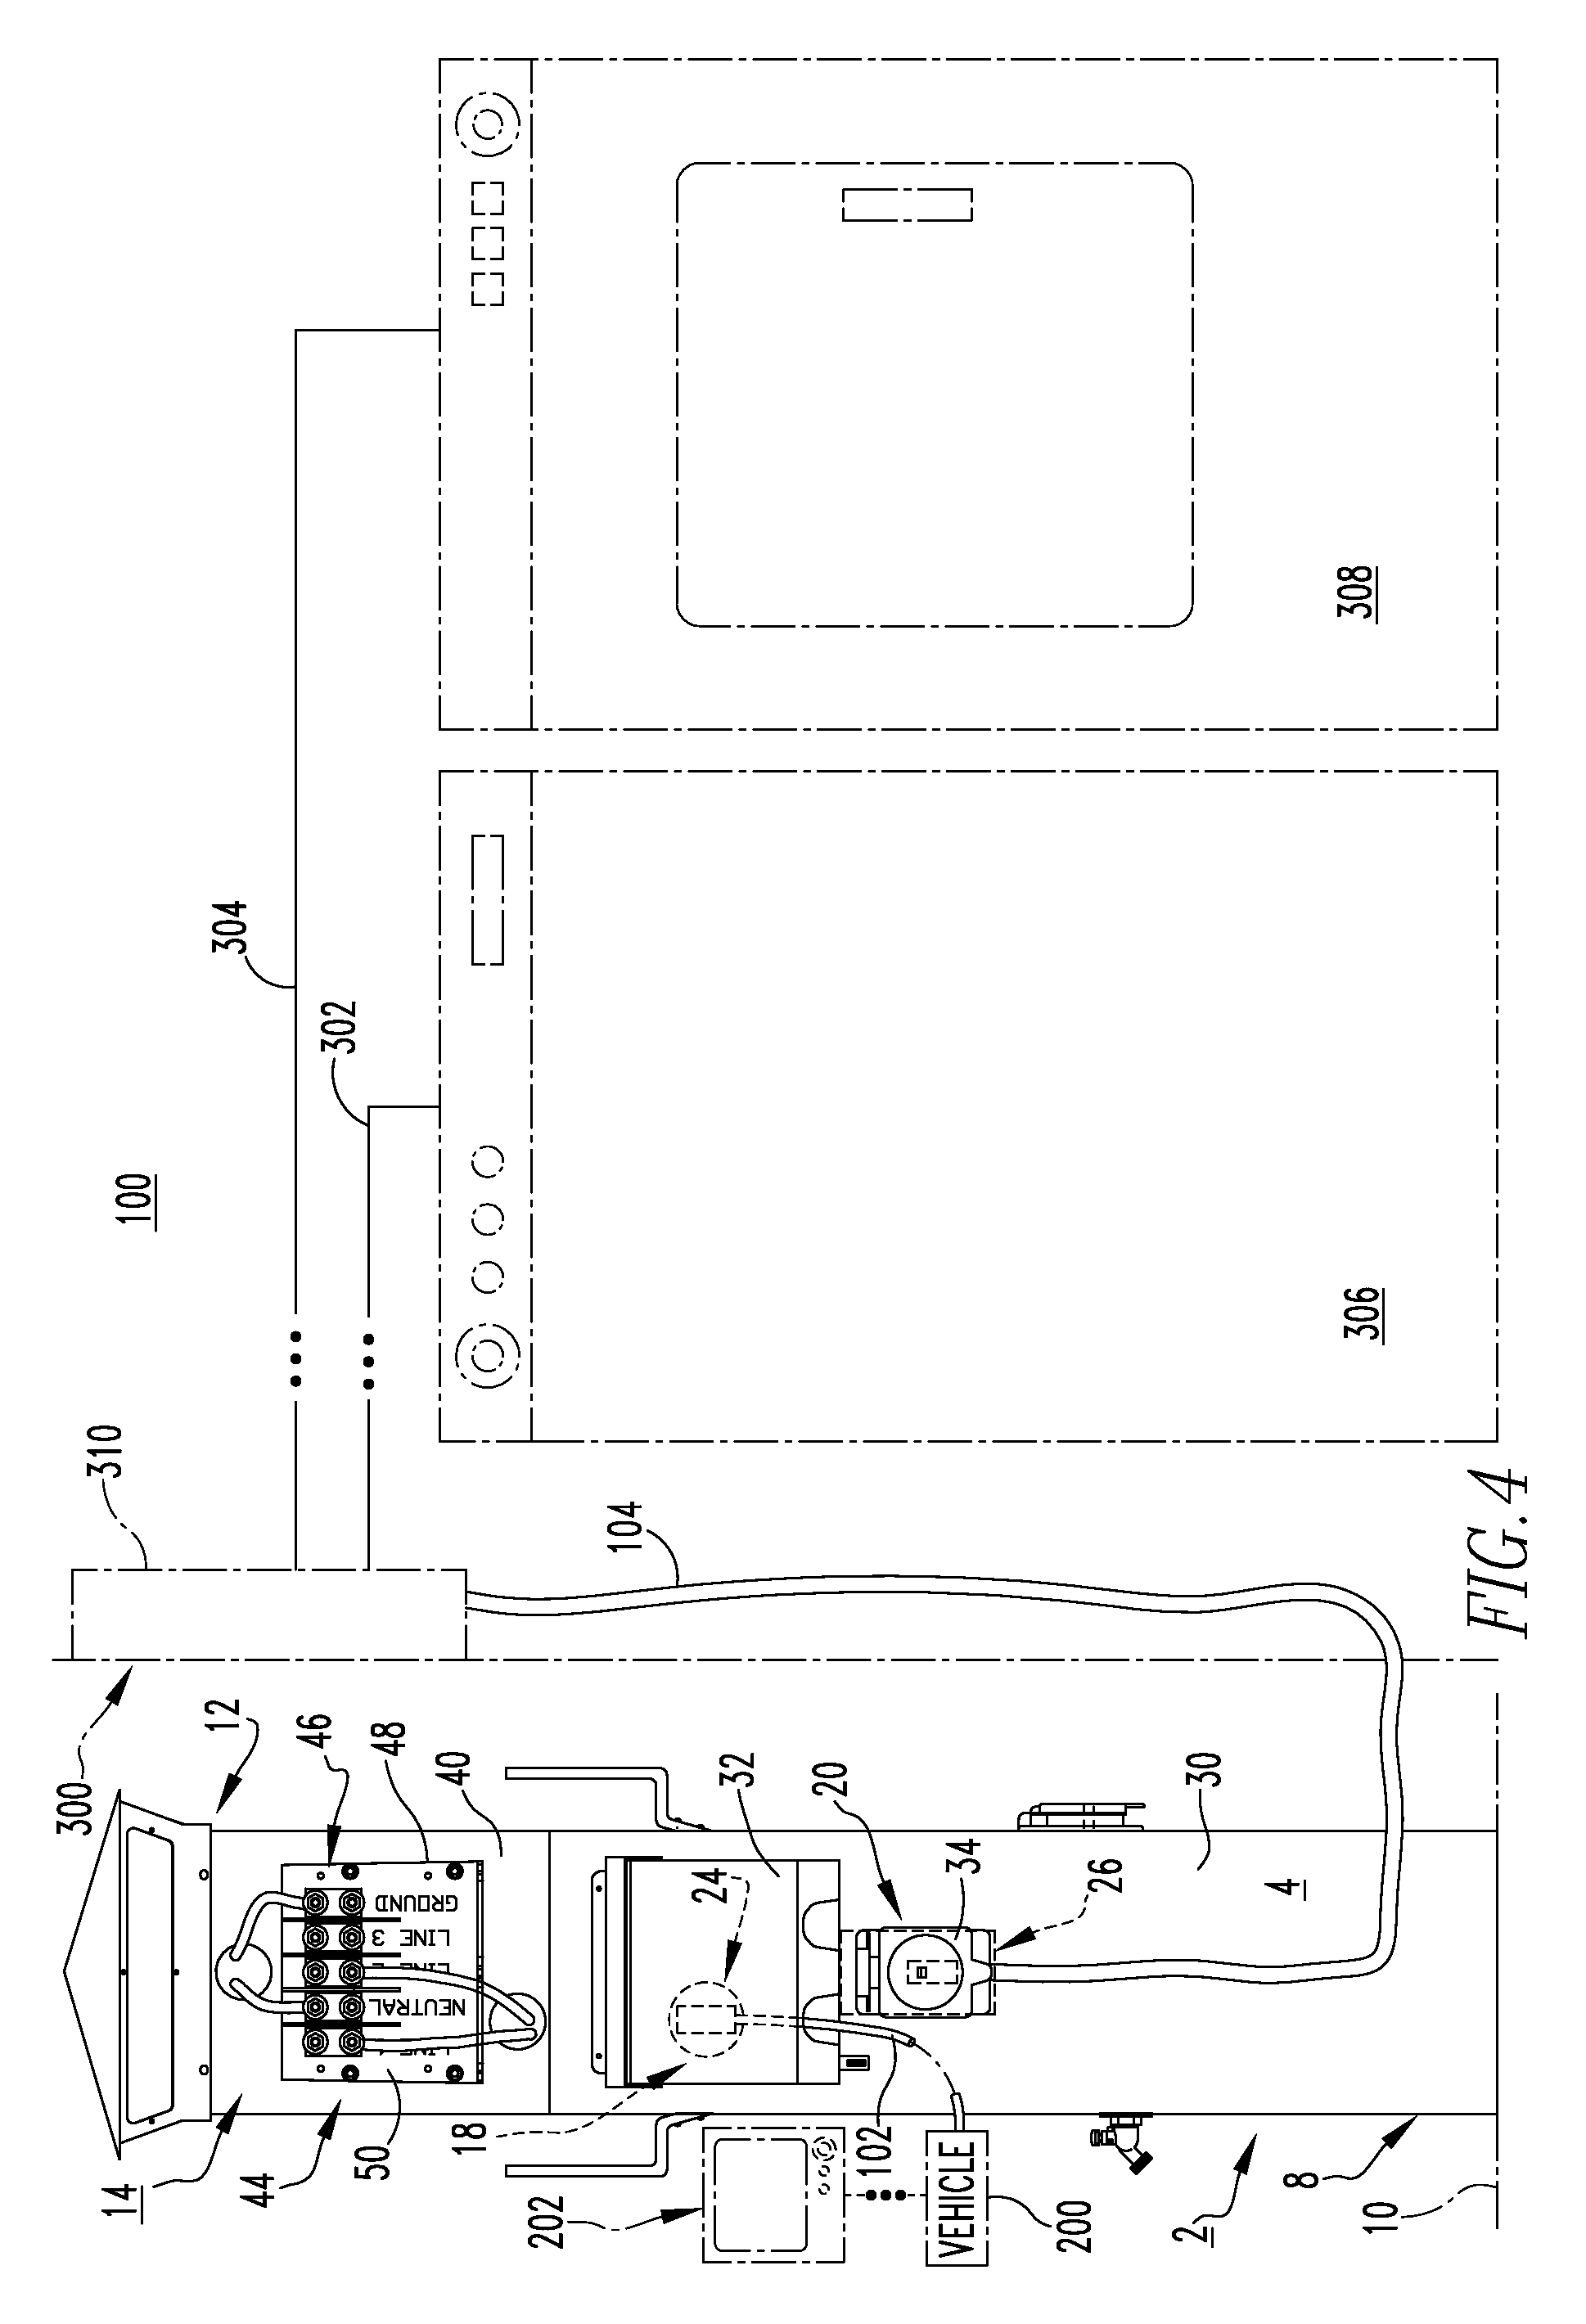 patent us8089747 power pedestal and system employing same patent drawing